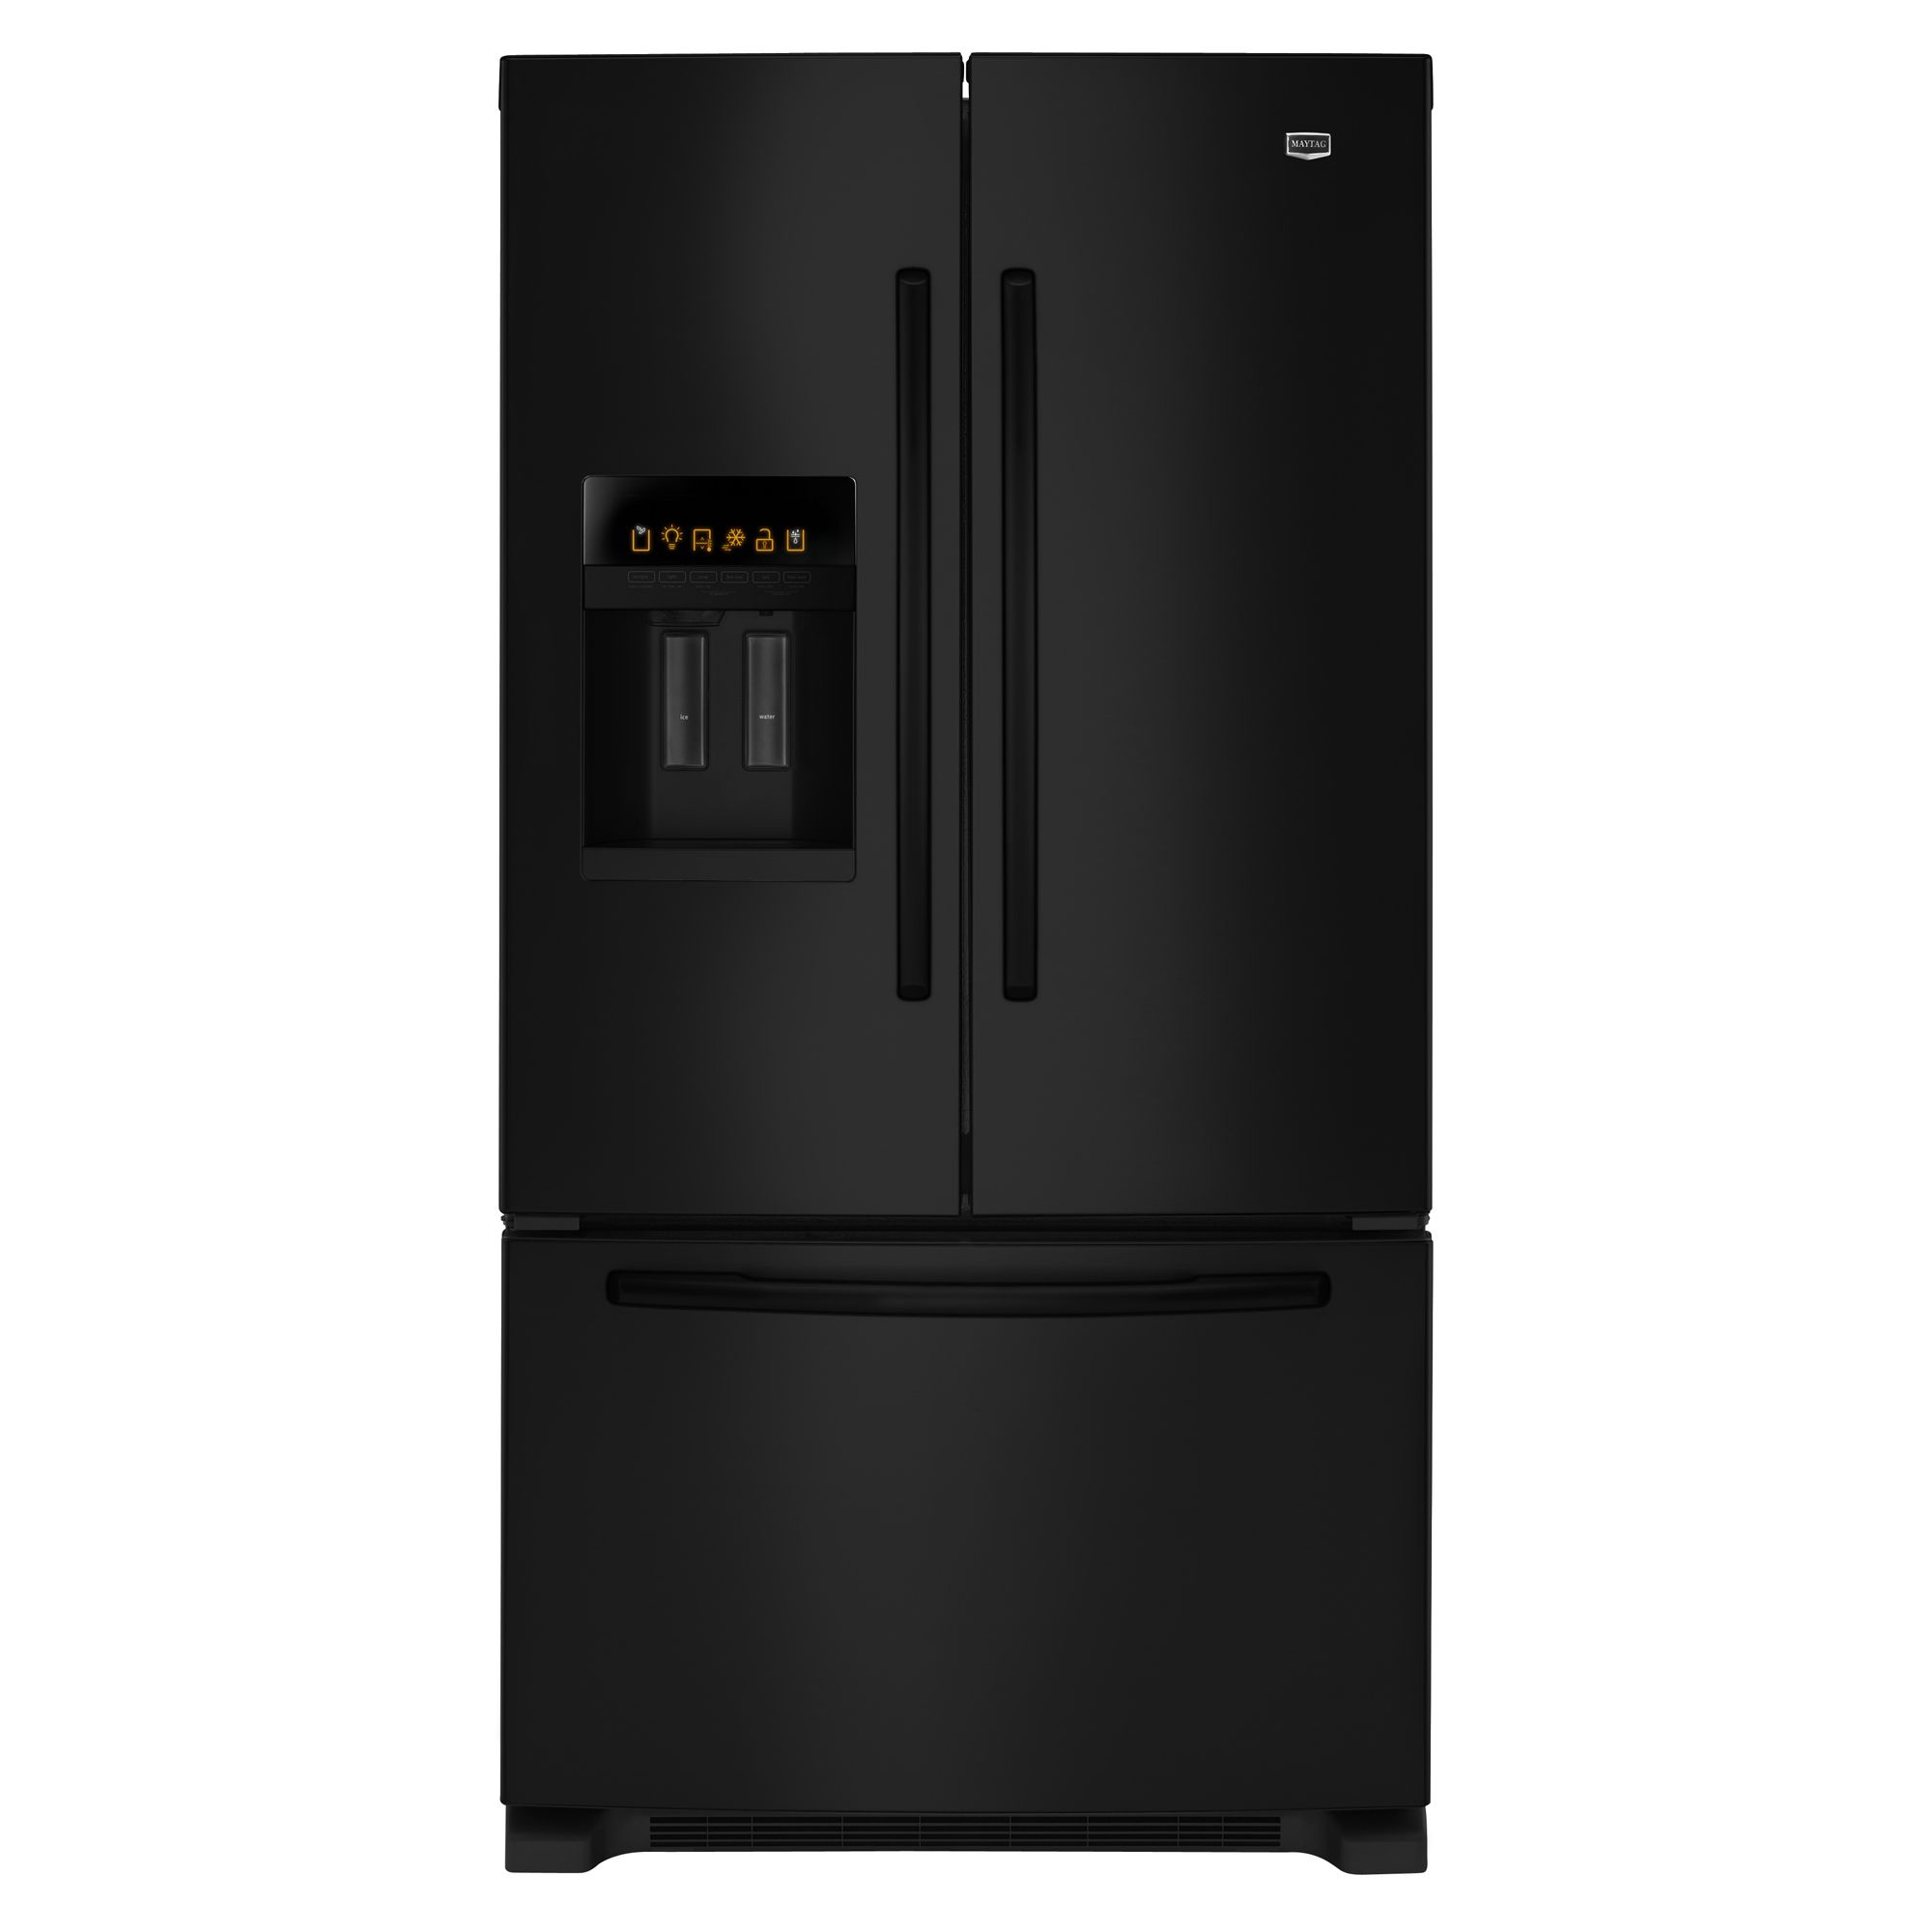 dispenser kitchen solid wood toy maytag mfi2670xeb 25.5 cu. ft. french door bottom freezer ...